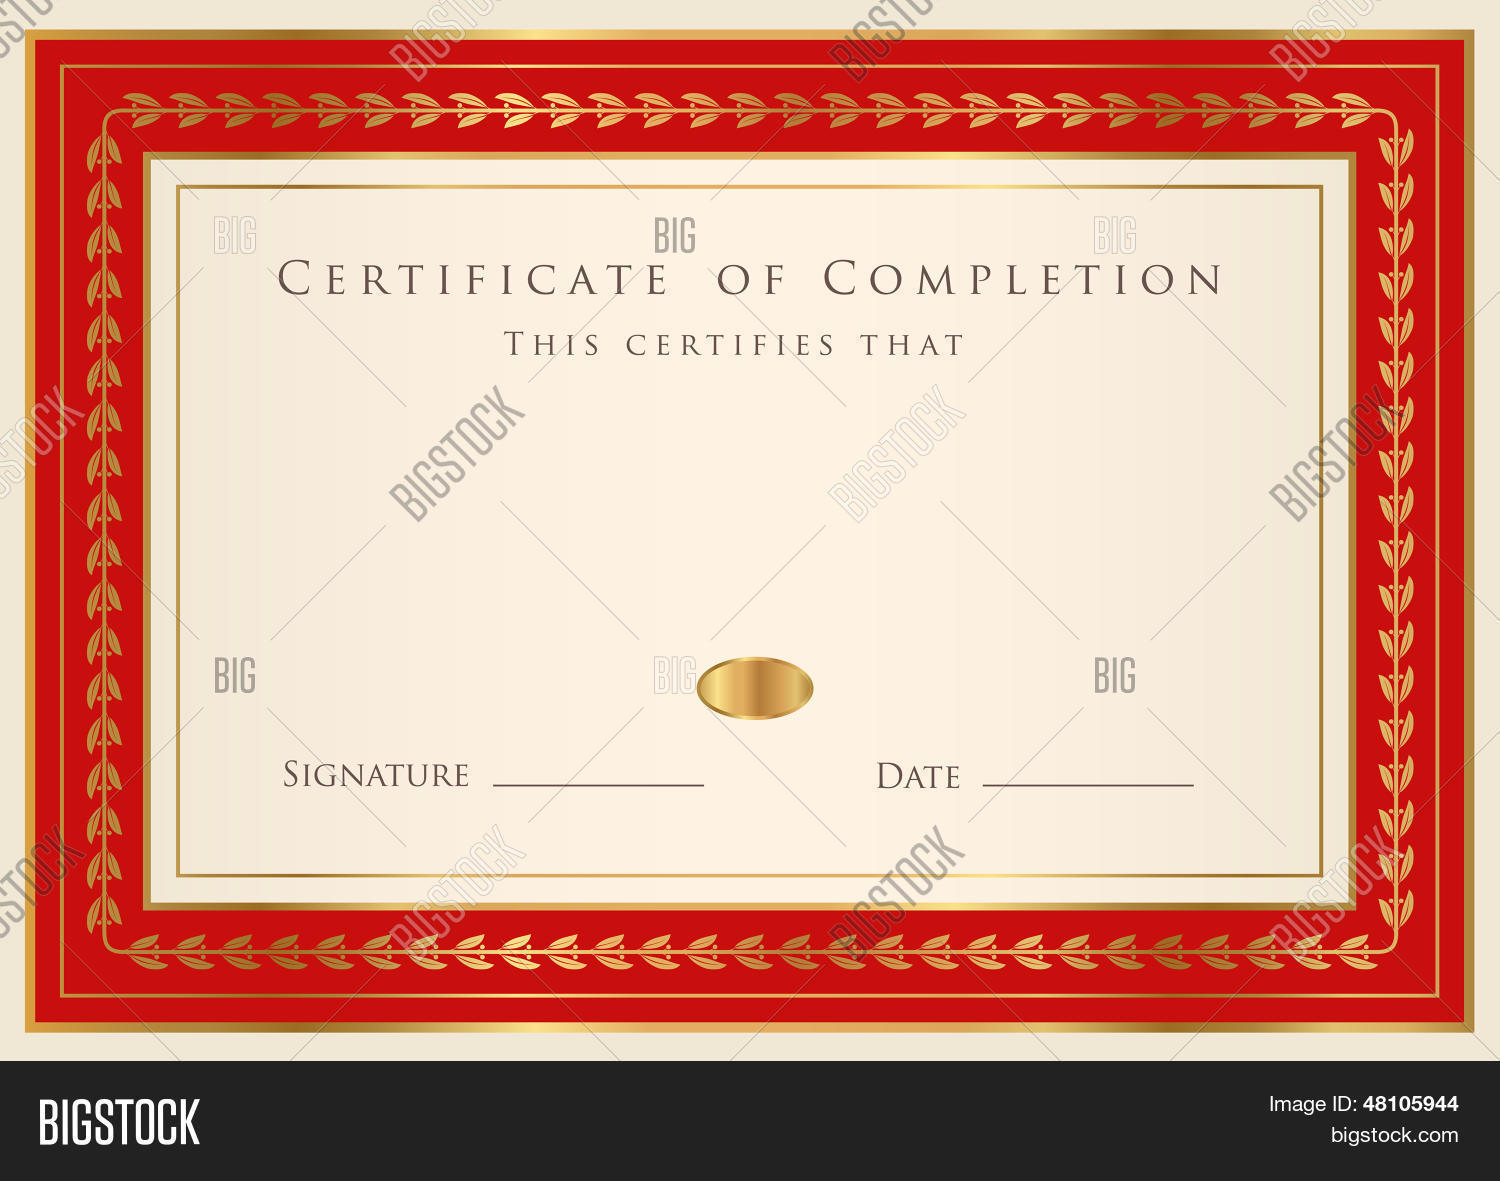 Blue certificate completion vector photo bigstock blue certificate of completion template or sample background with golden floral pattern border yelopaper Image collections